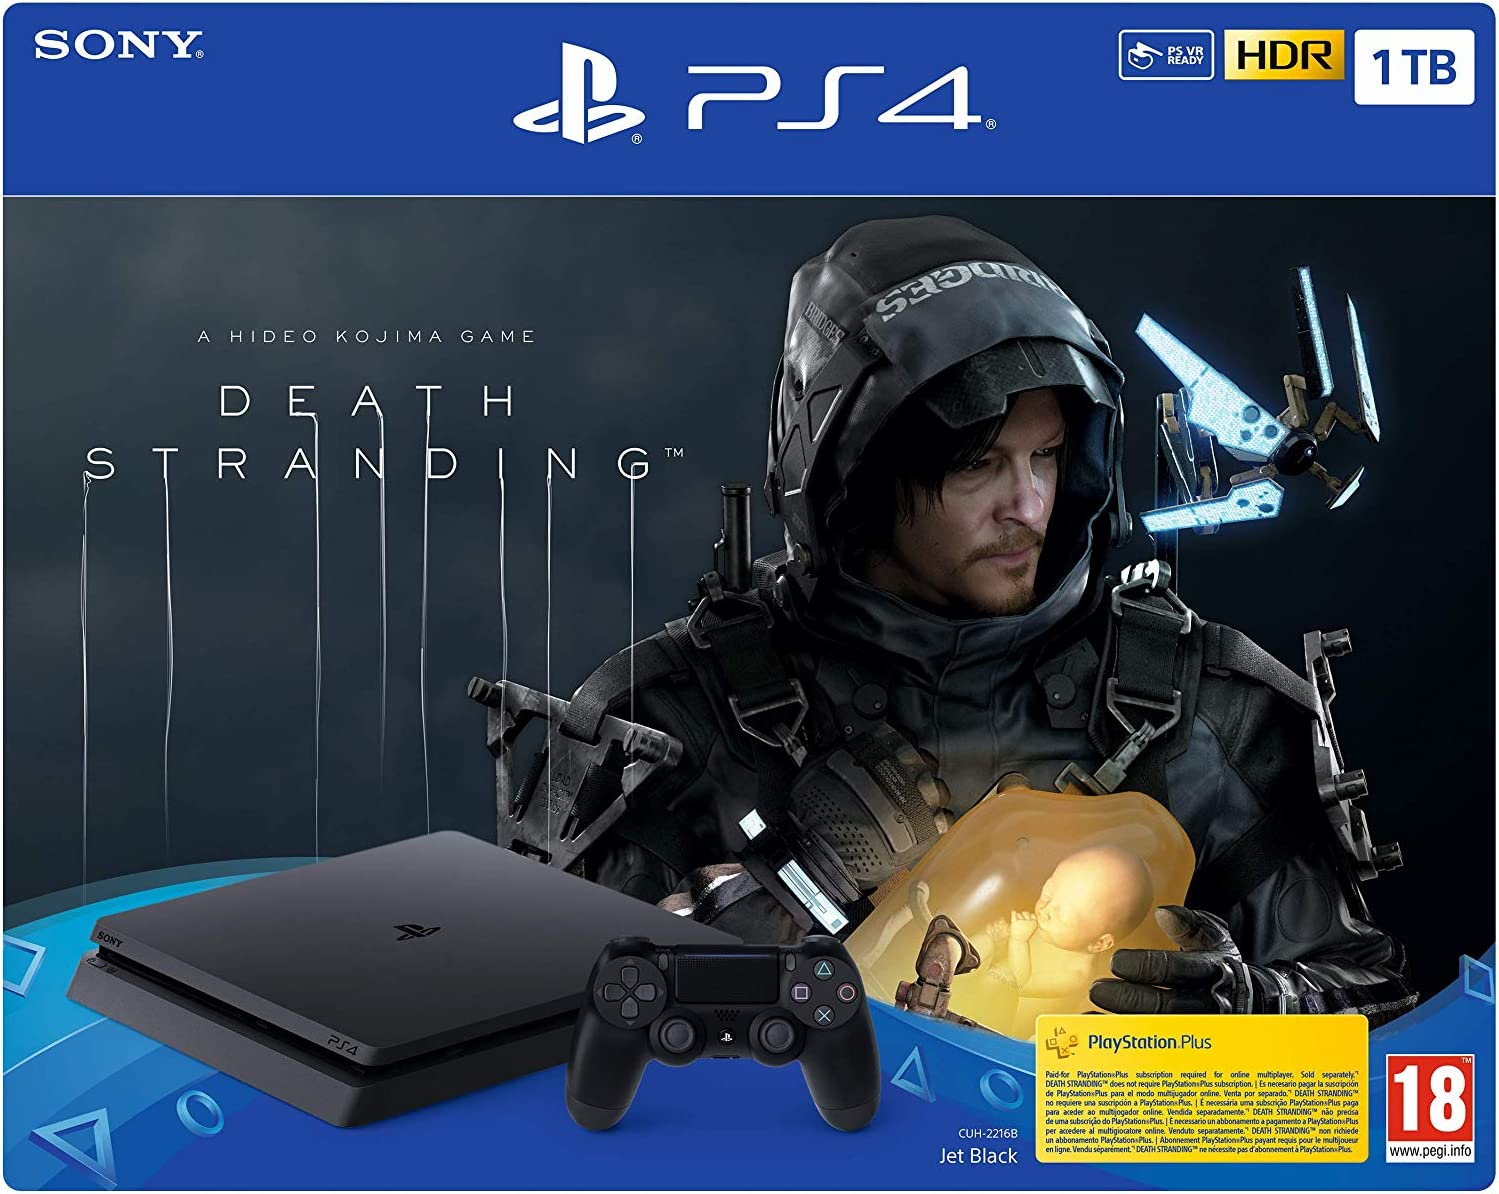 PlayStation 4 Consola de 1 TB + Death Stranding (PS4): Sony: Amazon.es: Videojuegos